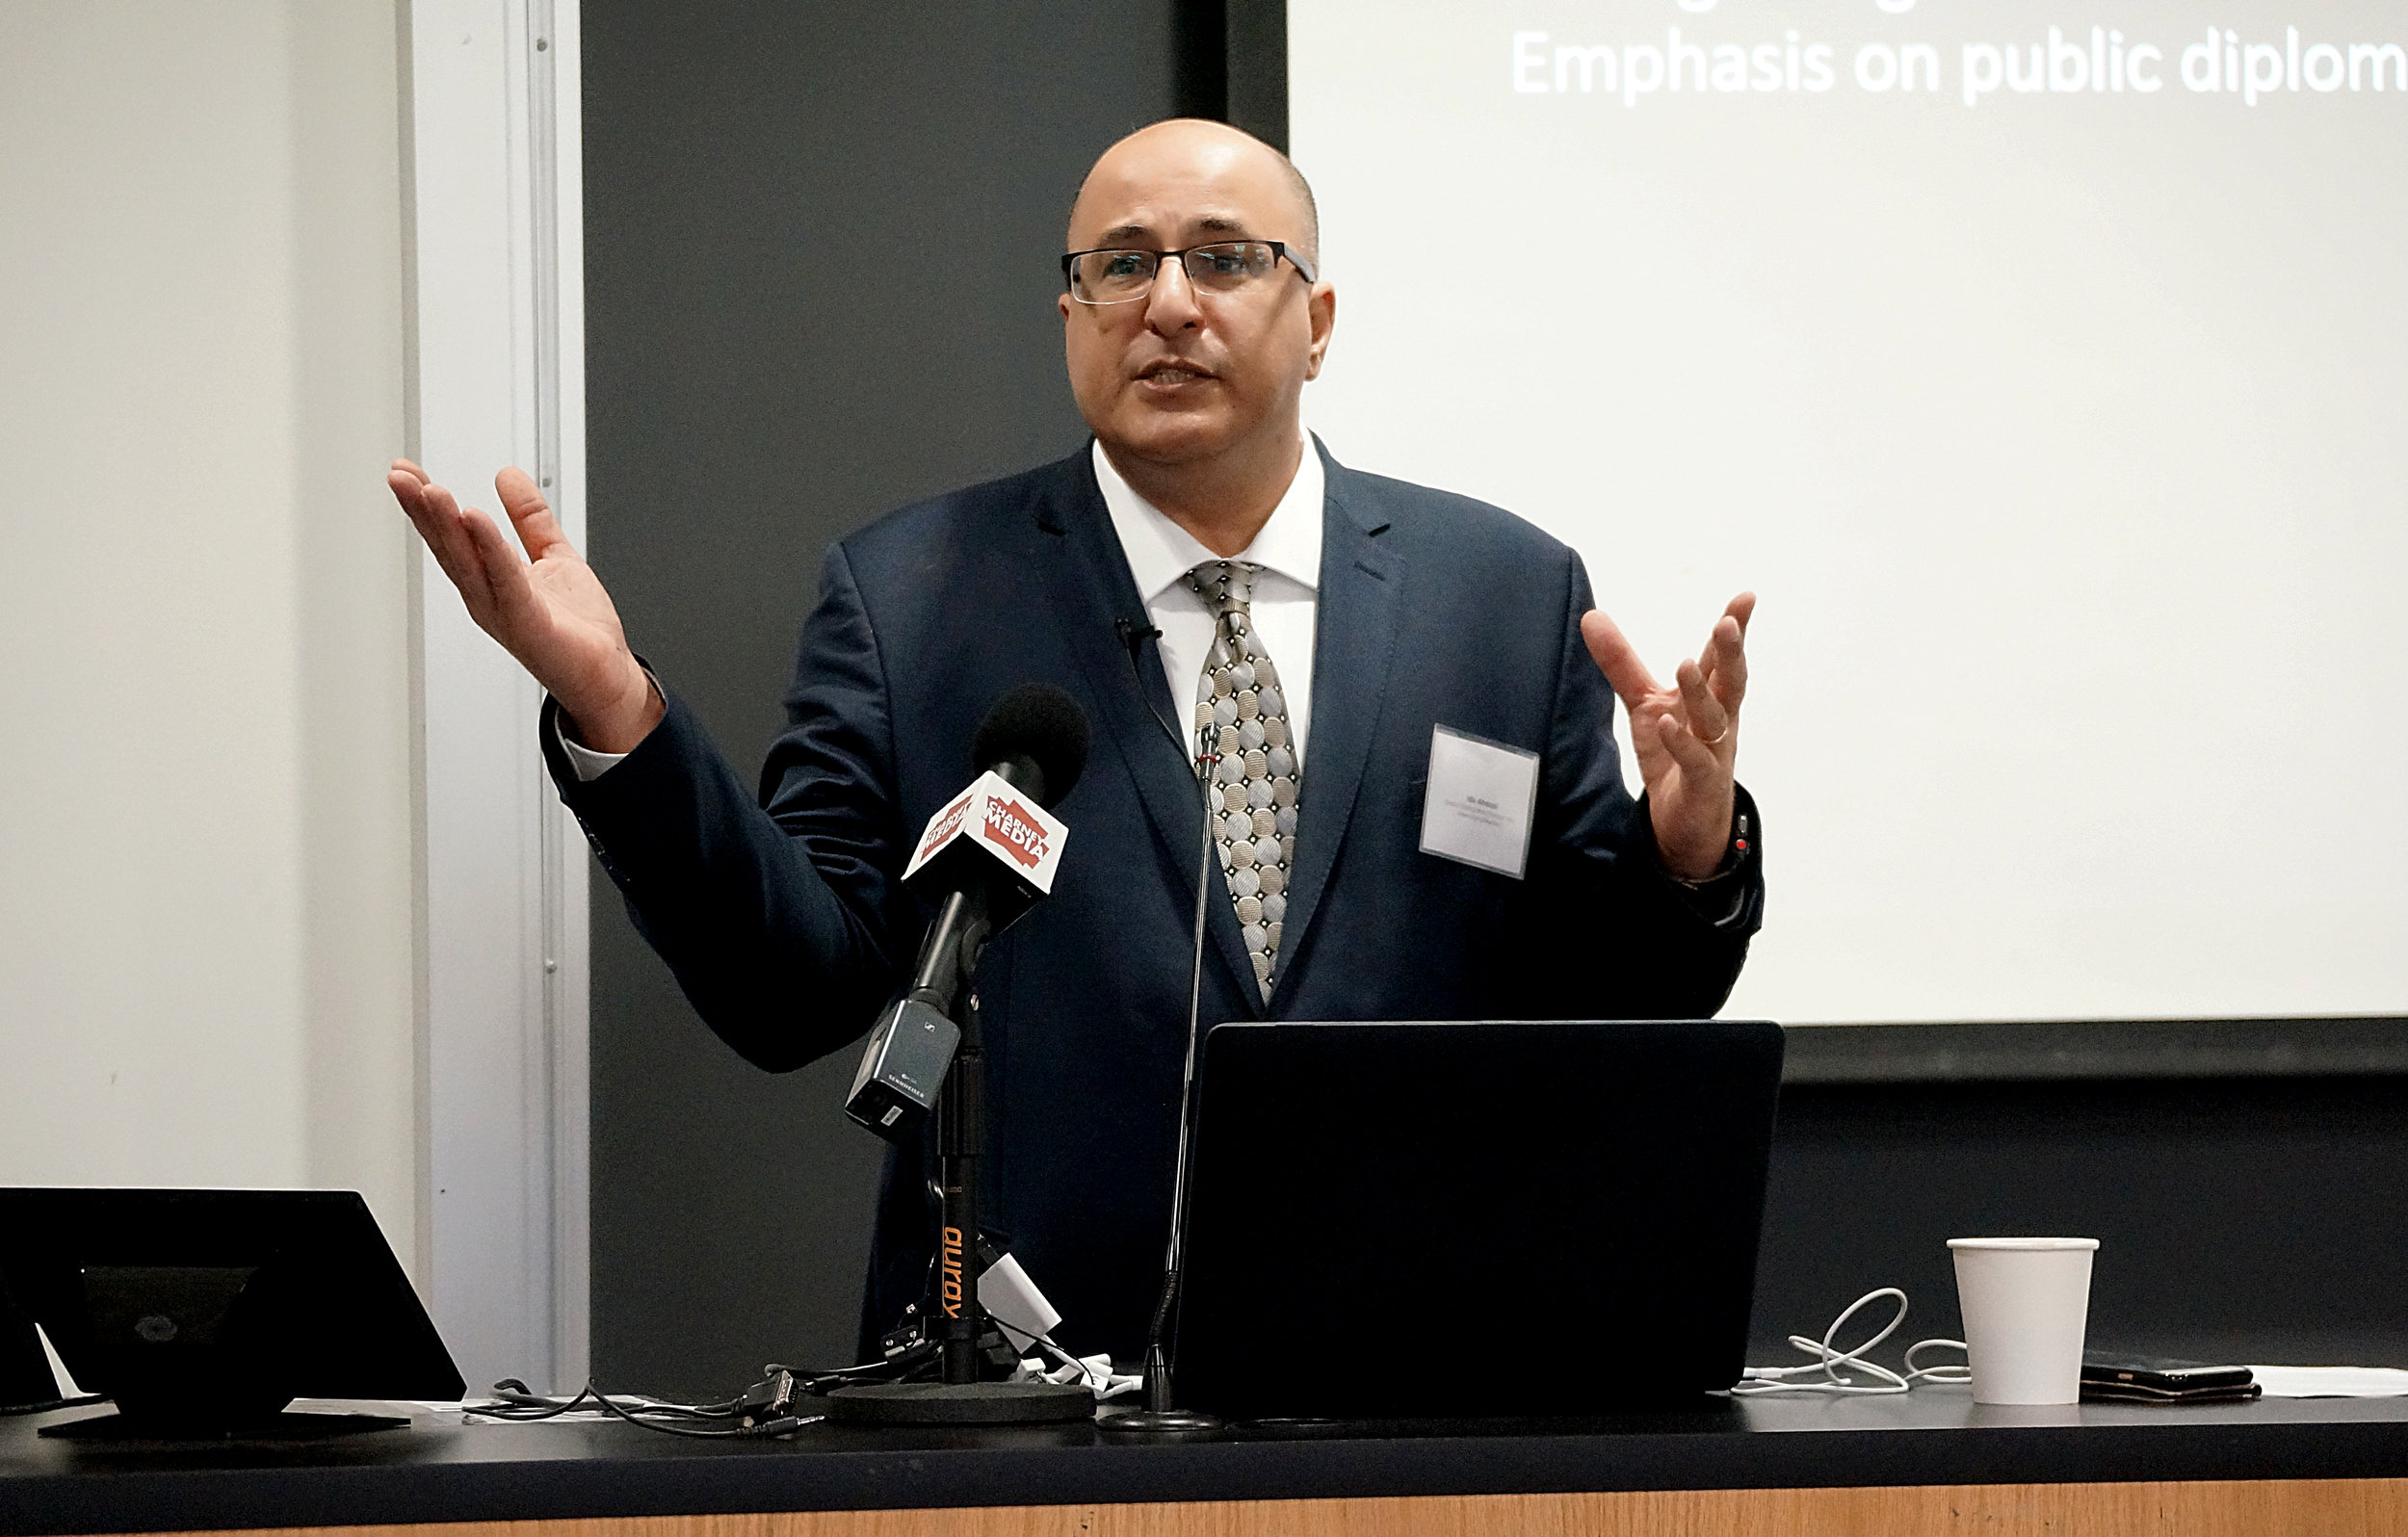 Ido Aharoni, Global Distinguished Professor, International Relations, NYU